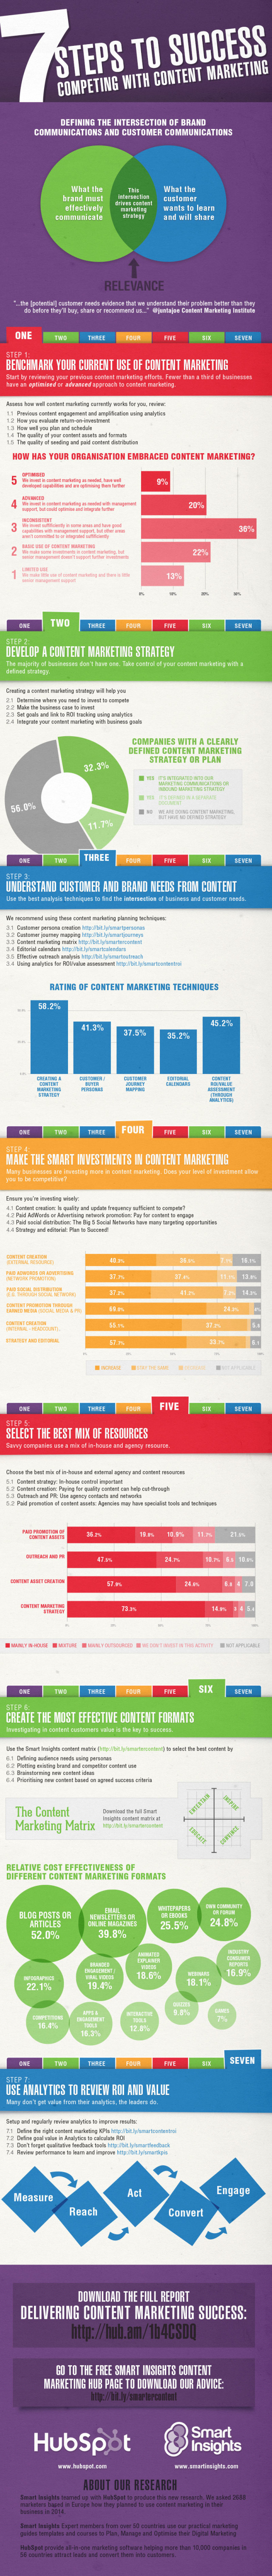 managing-content-marketing-infographic-640x6071